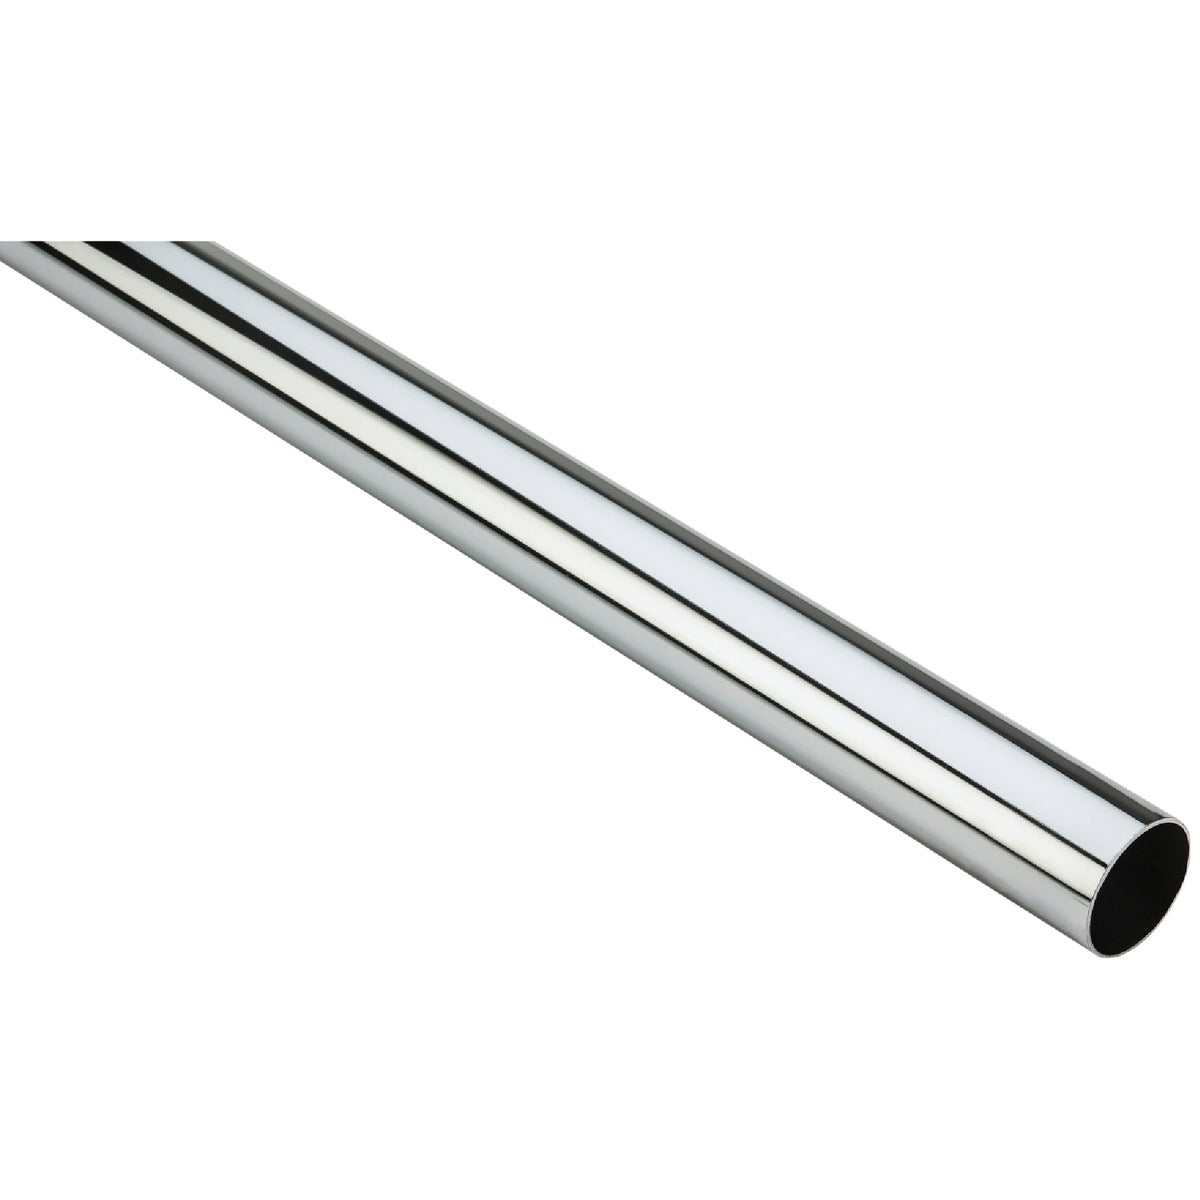 8' CHROME CLOSET ROD - N820027 by National Mfg Co